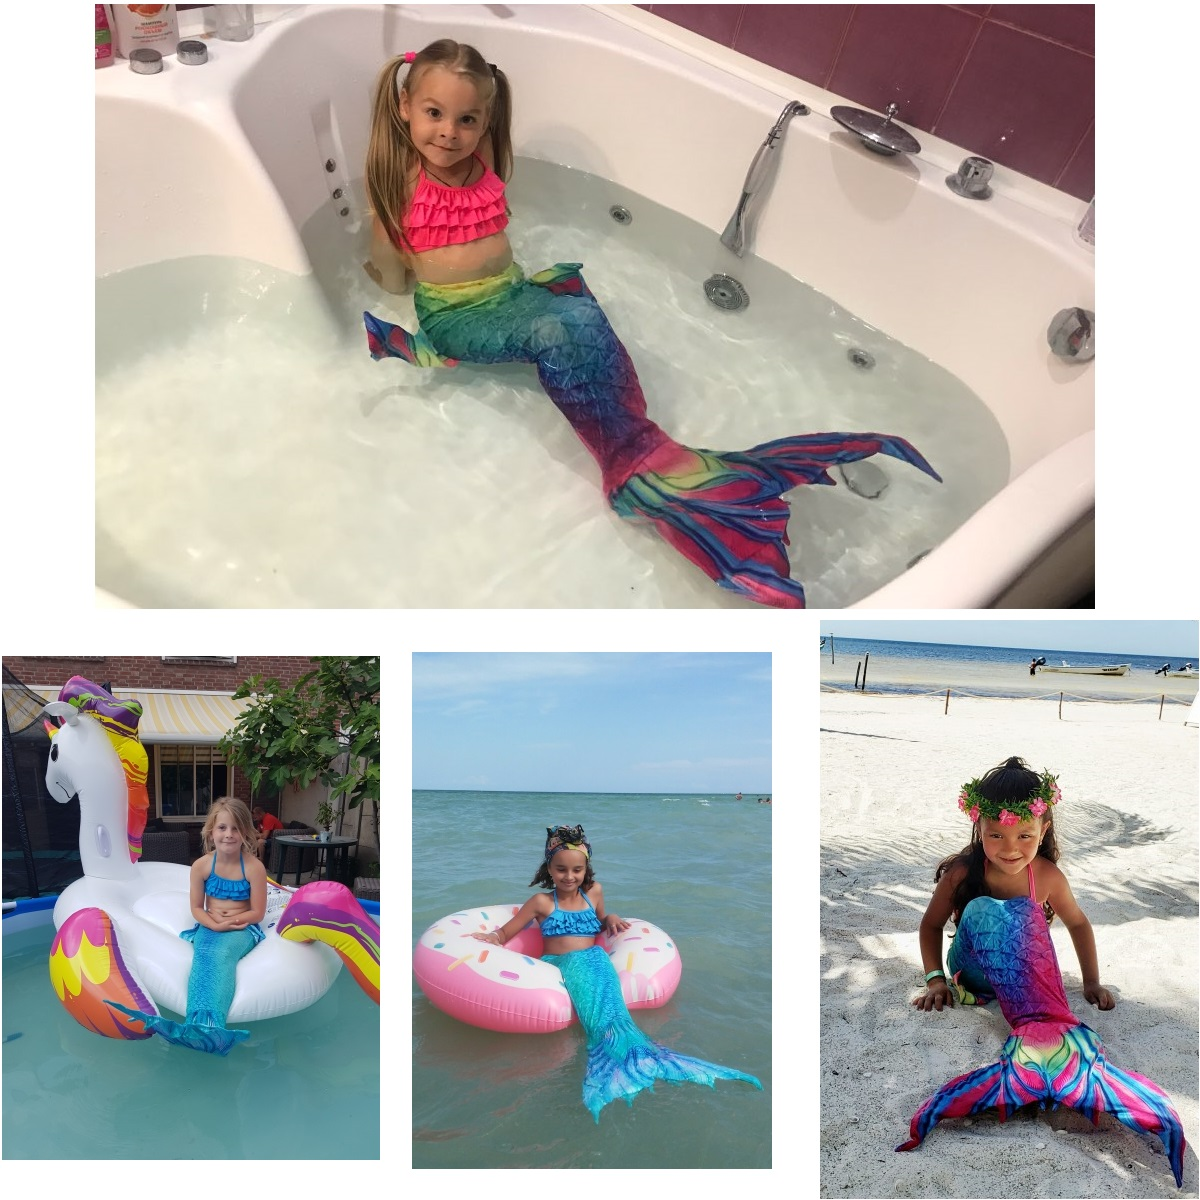 Image 2 - Kids Mermaid Swimsuit Bikini Girls Mermaid Tail with Finned Swimsuit Child's Wear Split Swimsuit Mermaid Tail Clothing Swimwear-in Girls Costumes from Novelty & Special Use